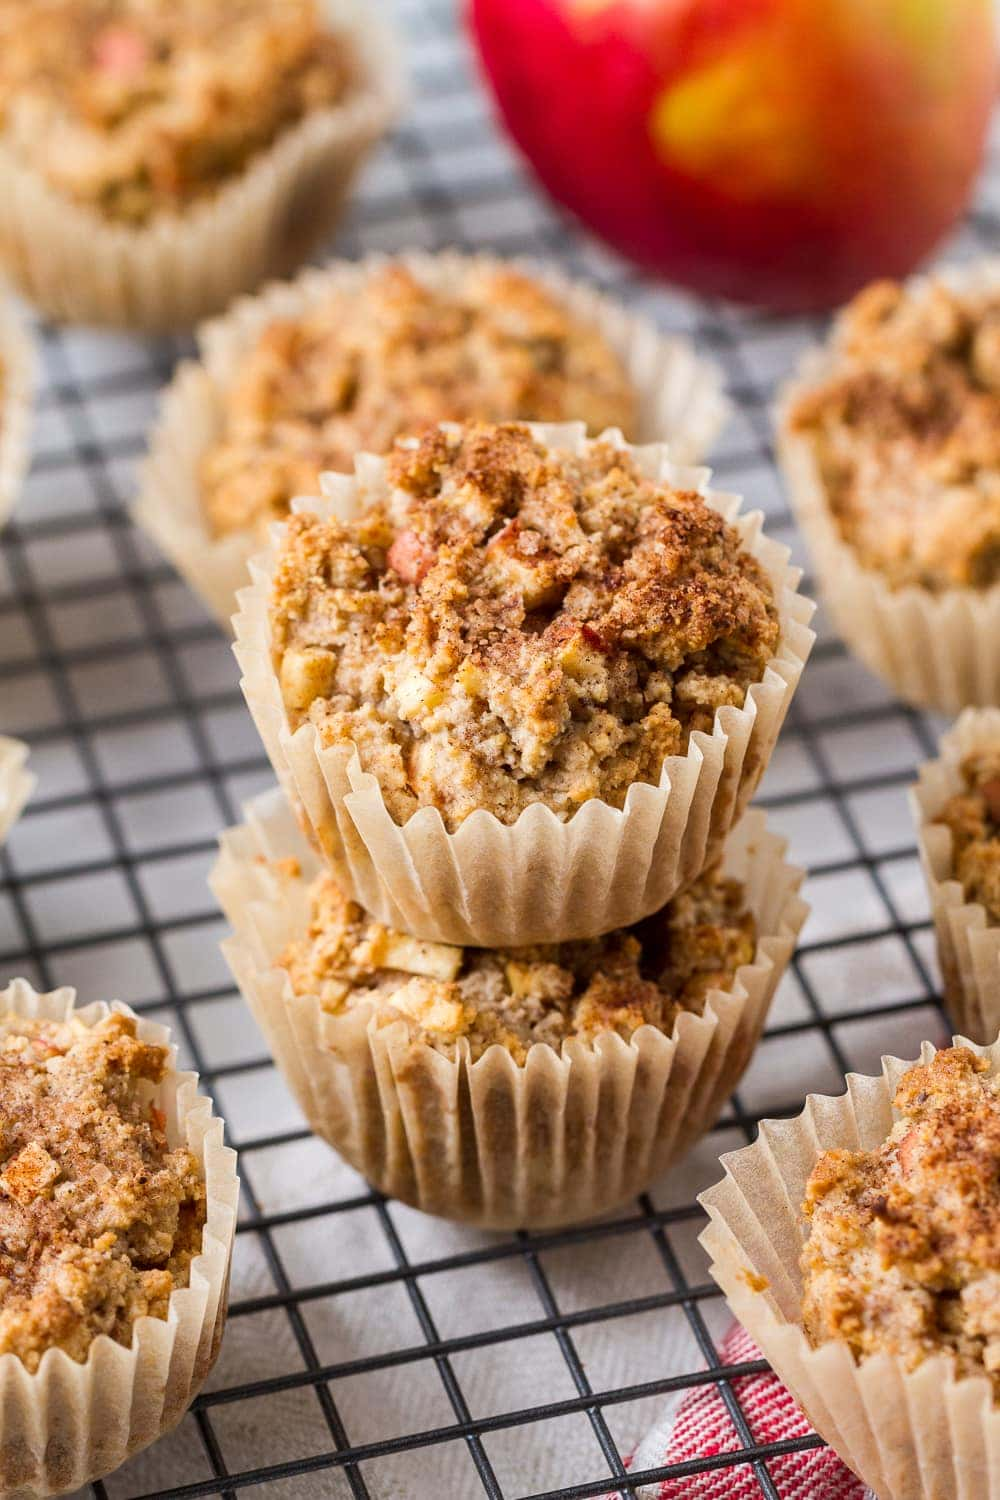 side angle view of a group of gluten free apple cinnamon muffins, with 2 stacked in the center on a wire cooling rack